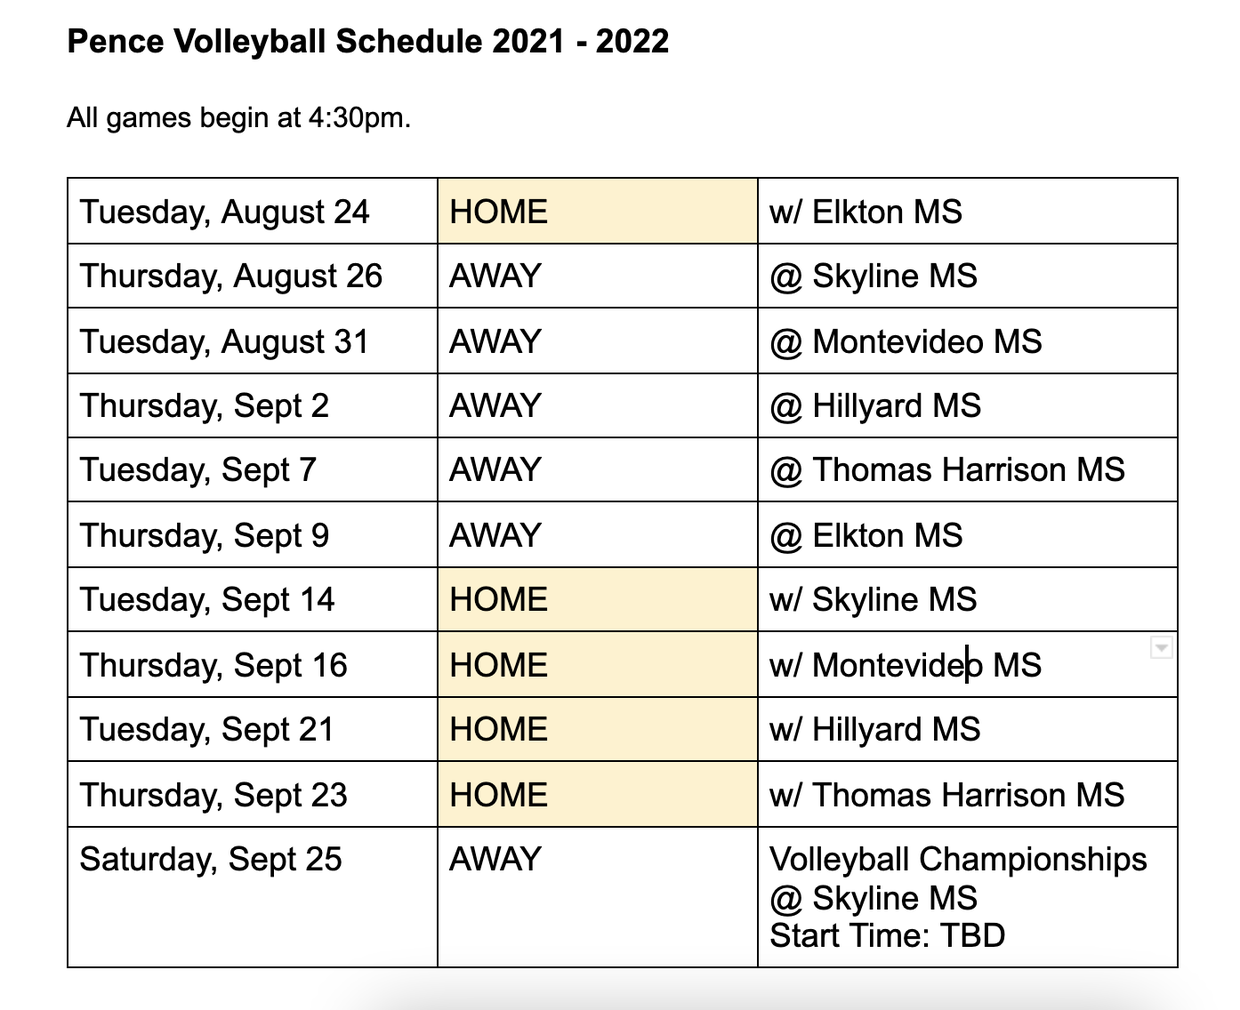 Pence Volleyball Schedule 2021-2022